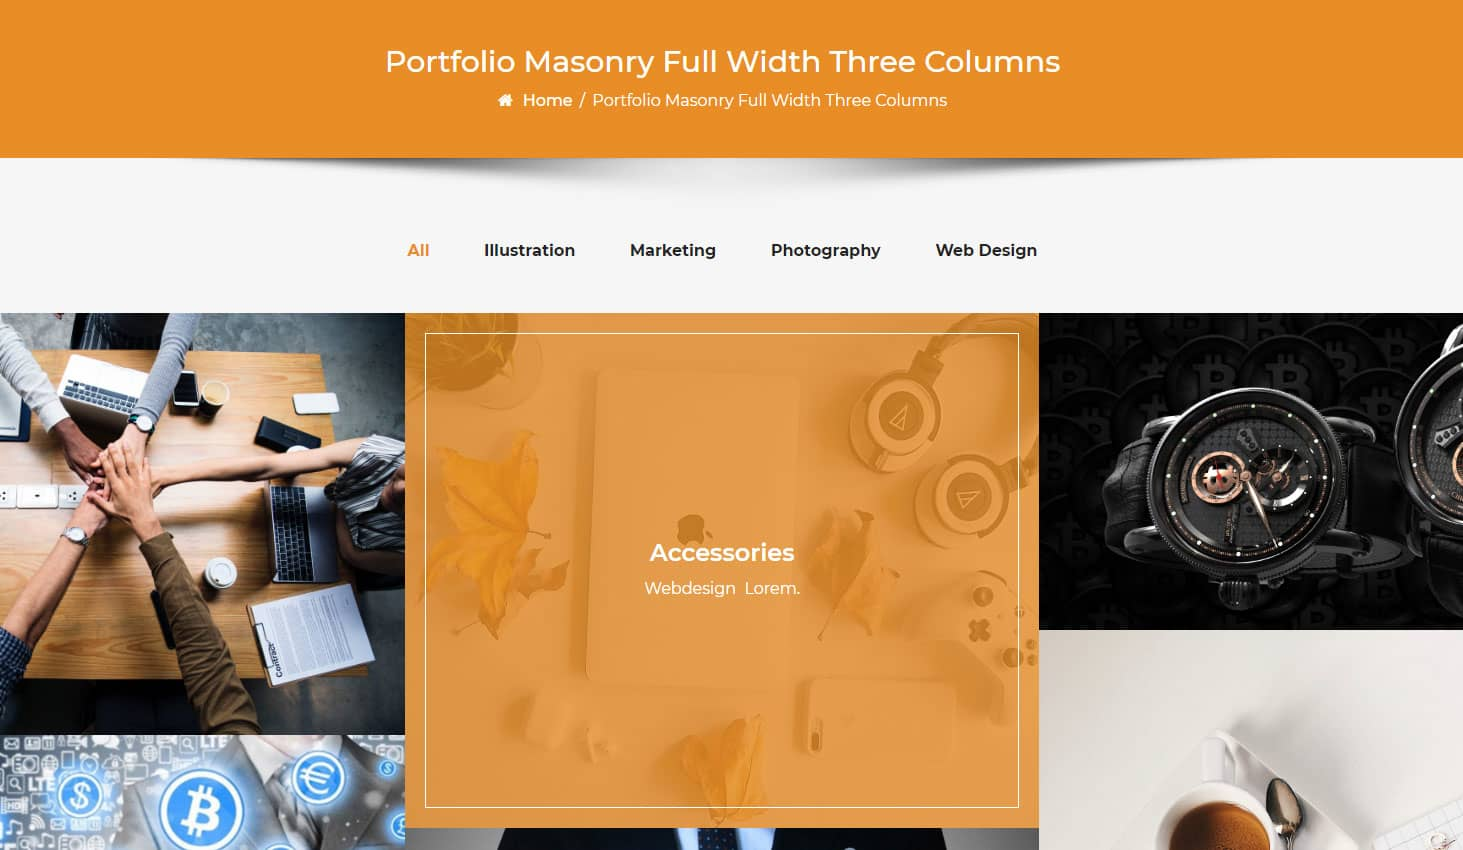 Crypto Premium WordPress Theme For Cryptocurrency Business and Blog Websites - A WP Life - Portfolio Masonry Full Width Three Column Layout Template